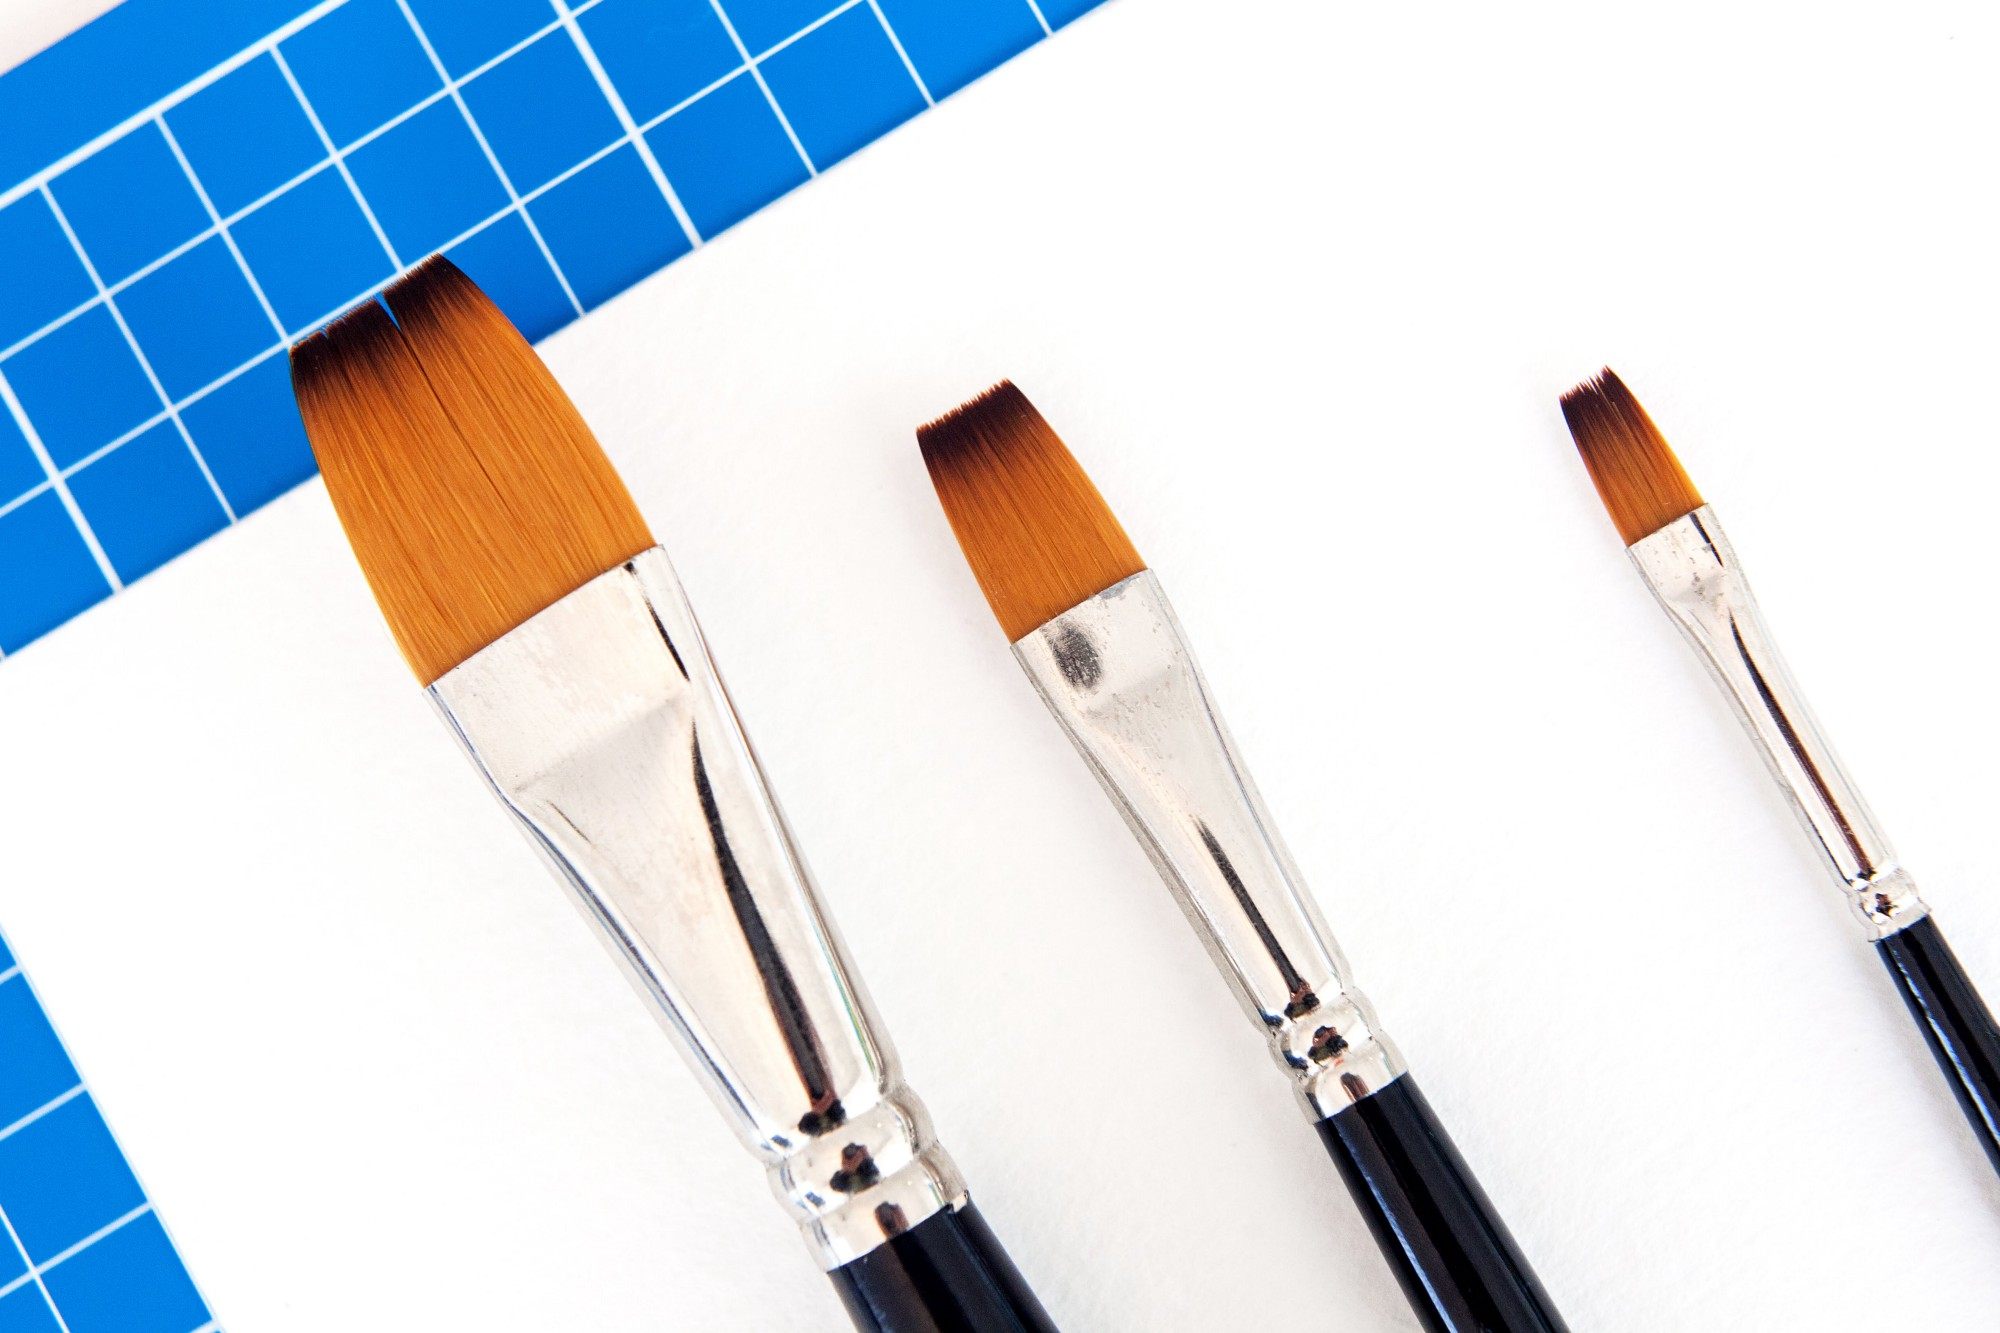 three flat paint brushes, different sizes, on a white back ground with light blue tie on one side